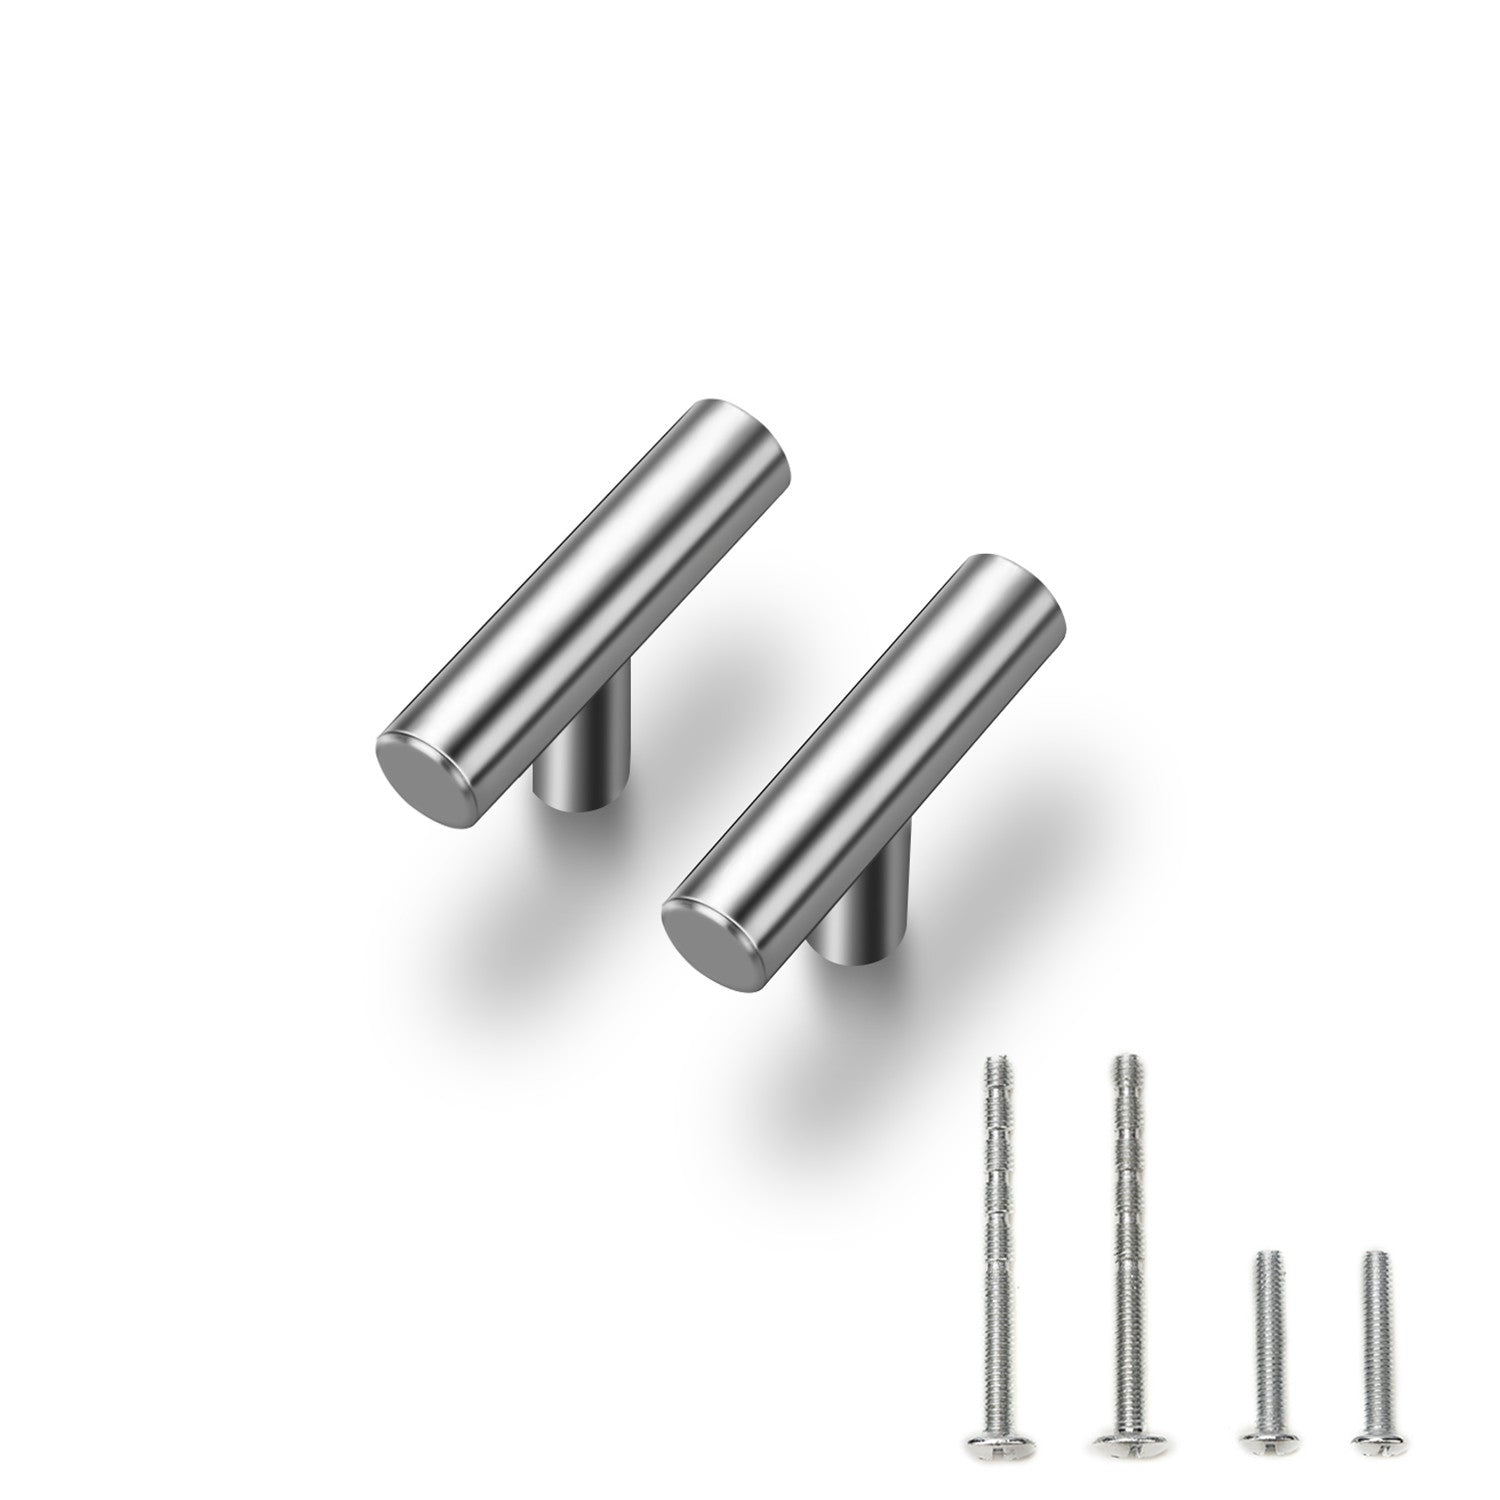 "25 Pack 2 Inchs Cabinet Pulls Brushed Nickel Stainless Steel Kitchen Cupboard Handles Cabinet Handles 2""Length"